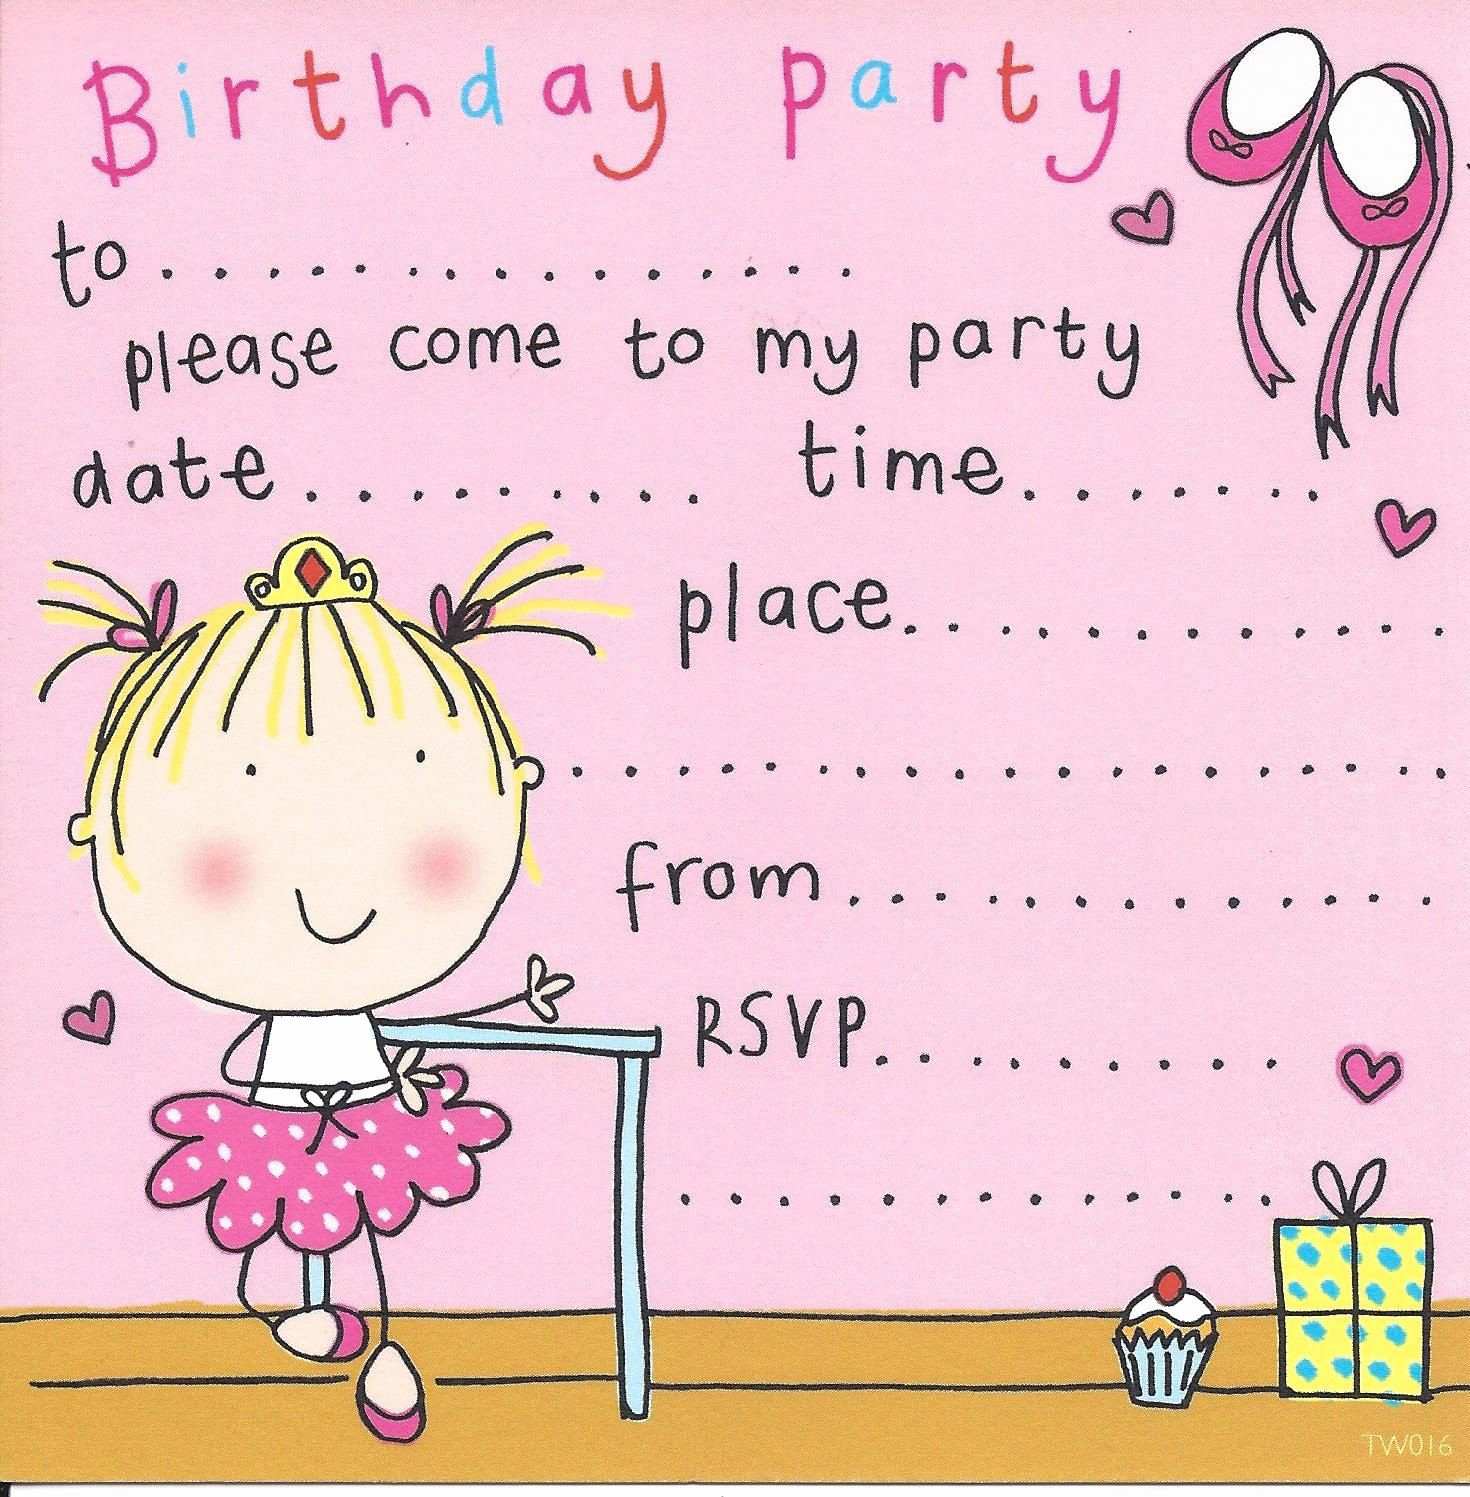 Kids Birthday Party Invites Templates Fresh Party Invitations Birthday Party Invitations Kids Party